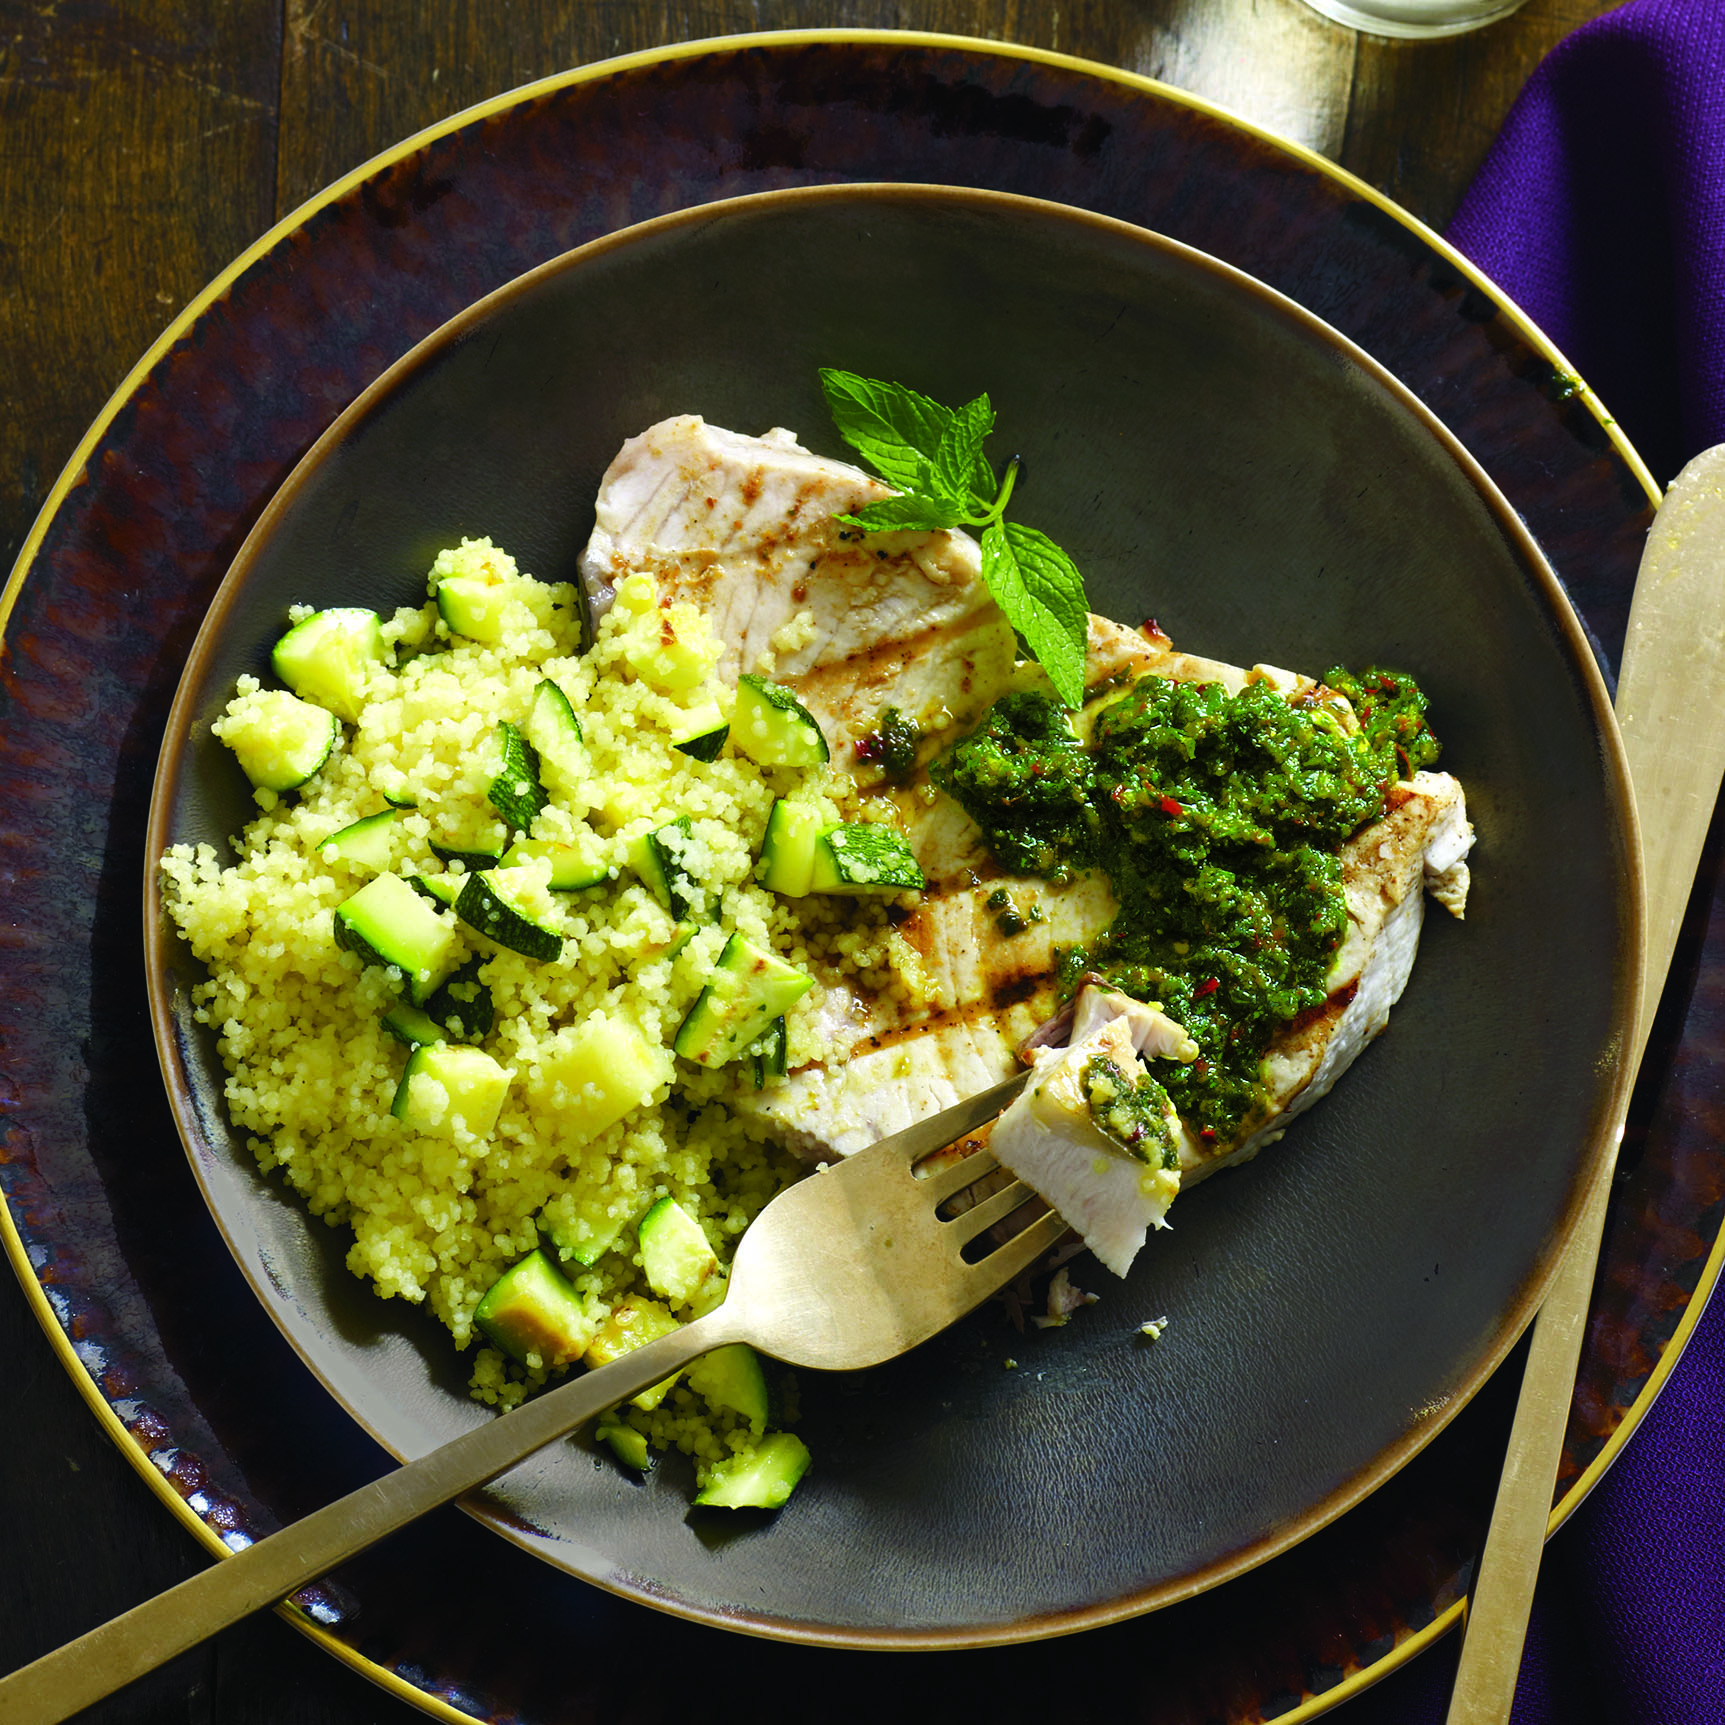 Grilled Fish with Moroccan Chermoula Sauce & Zucchini Couscous